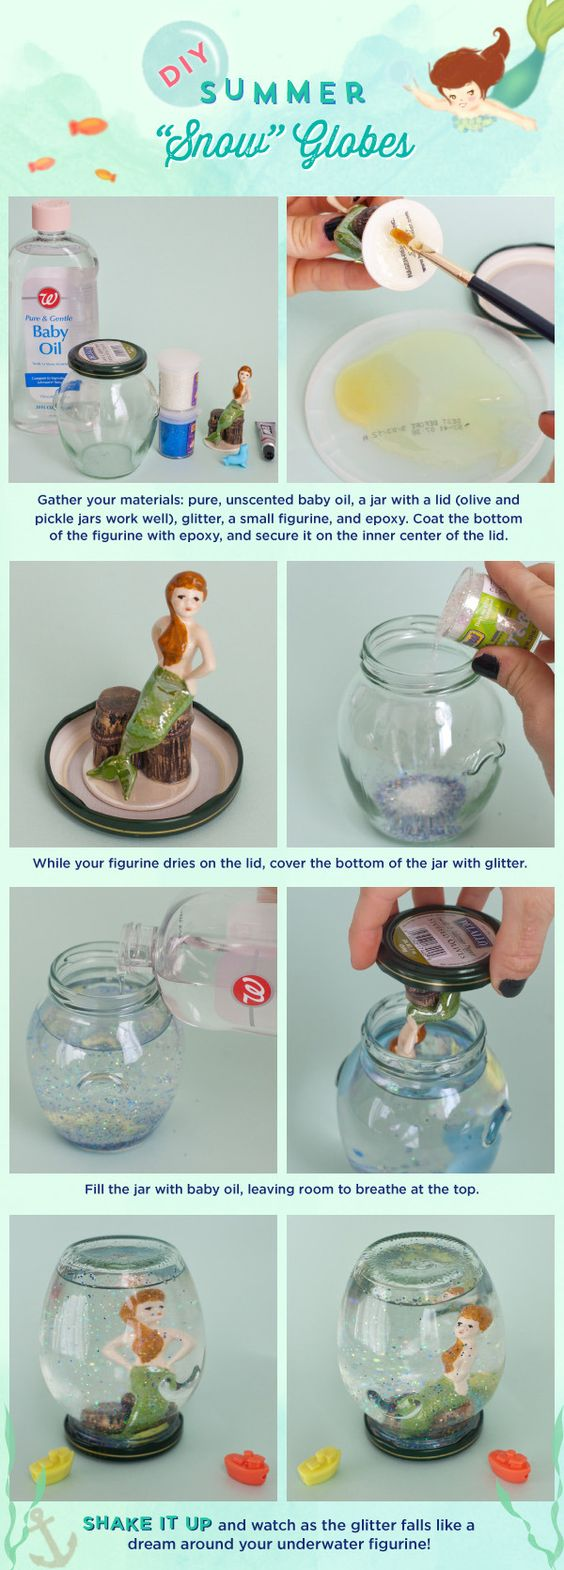 Who says snow globes are just for Winter? This Summer snow globe inspired by 'Modcloth' shows you how to make your own glittery beach themed globe. This kit will make one globe, with supplies left over. ∙ CLICK TO CUSTOMIZE AND ORDER ∙